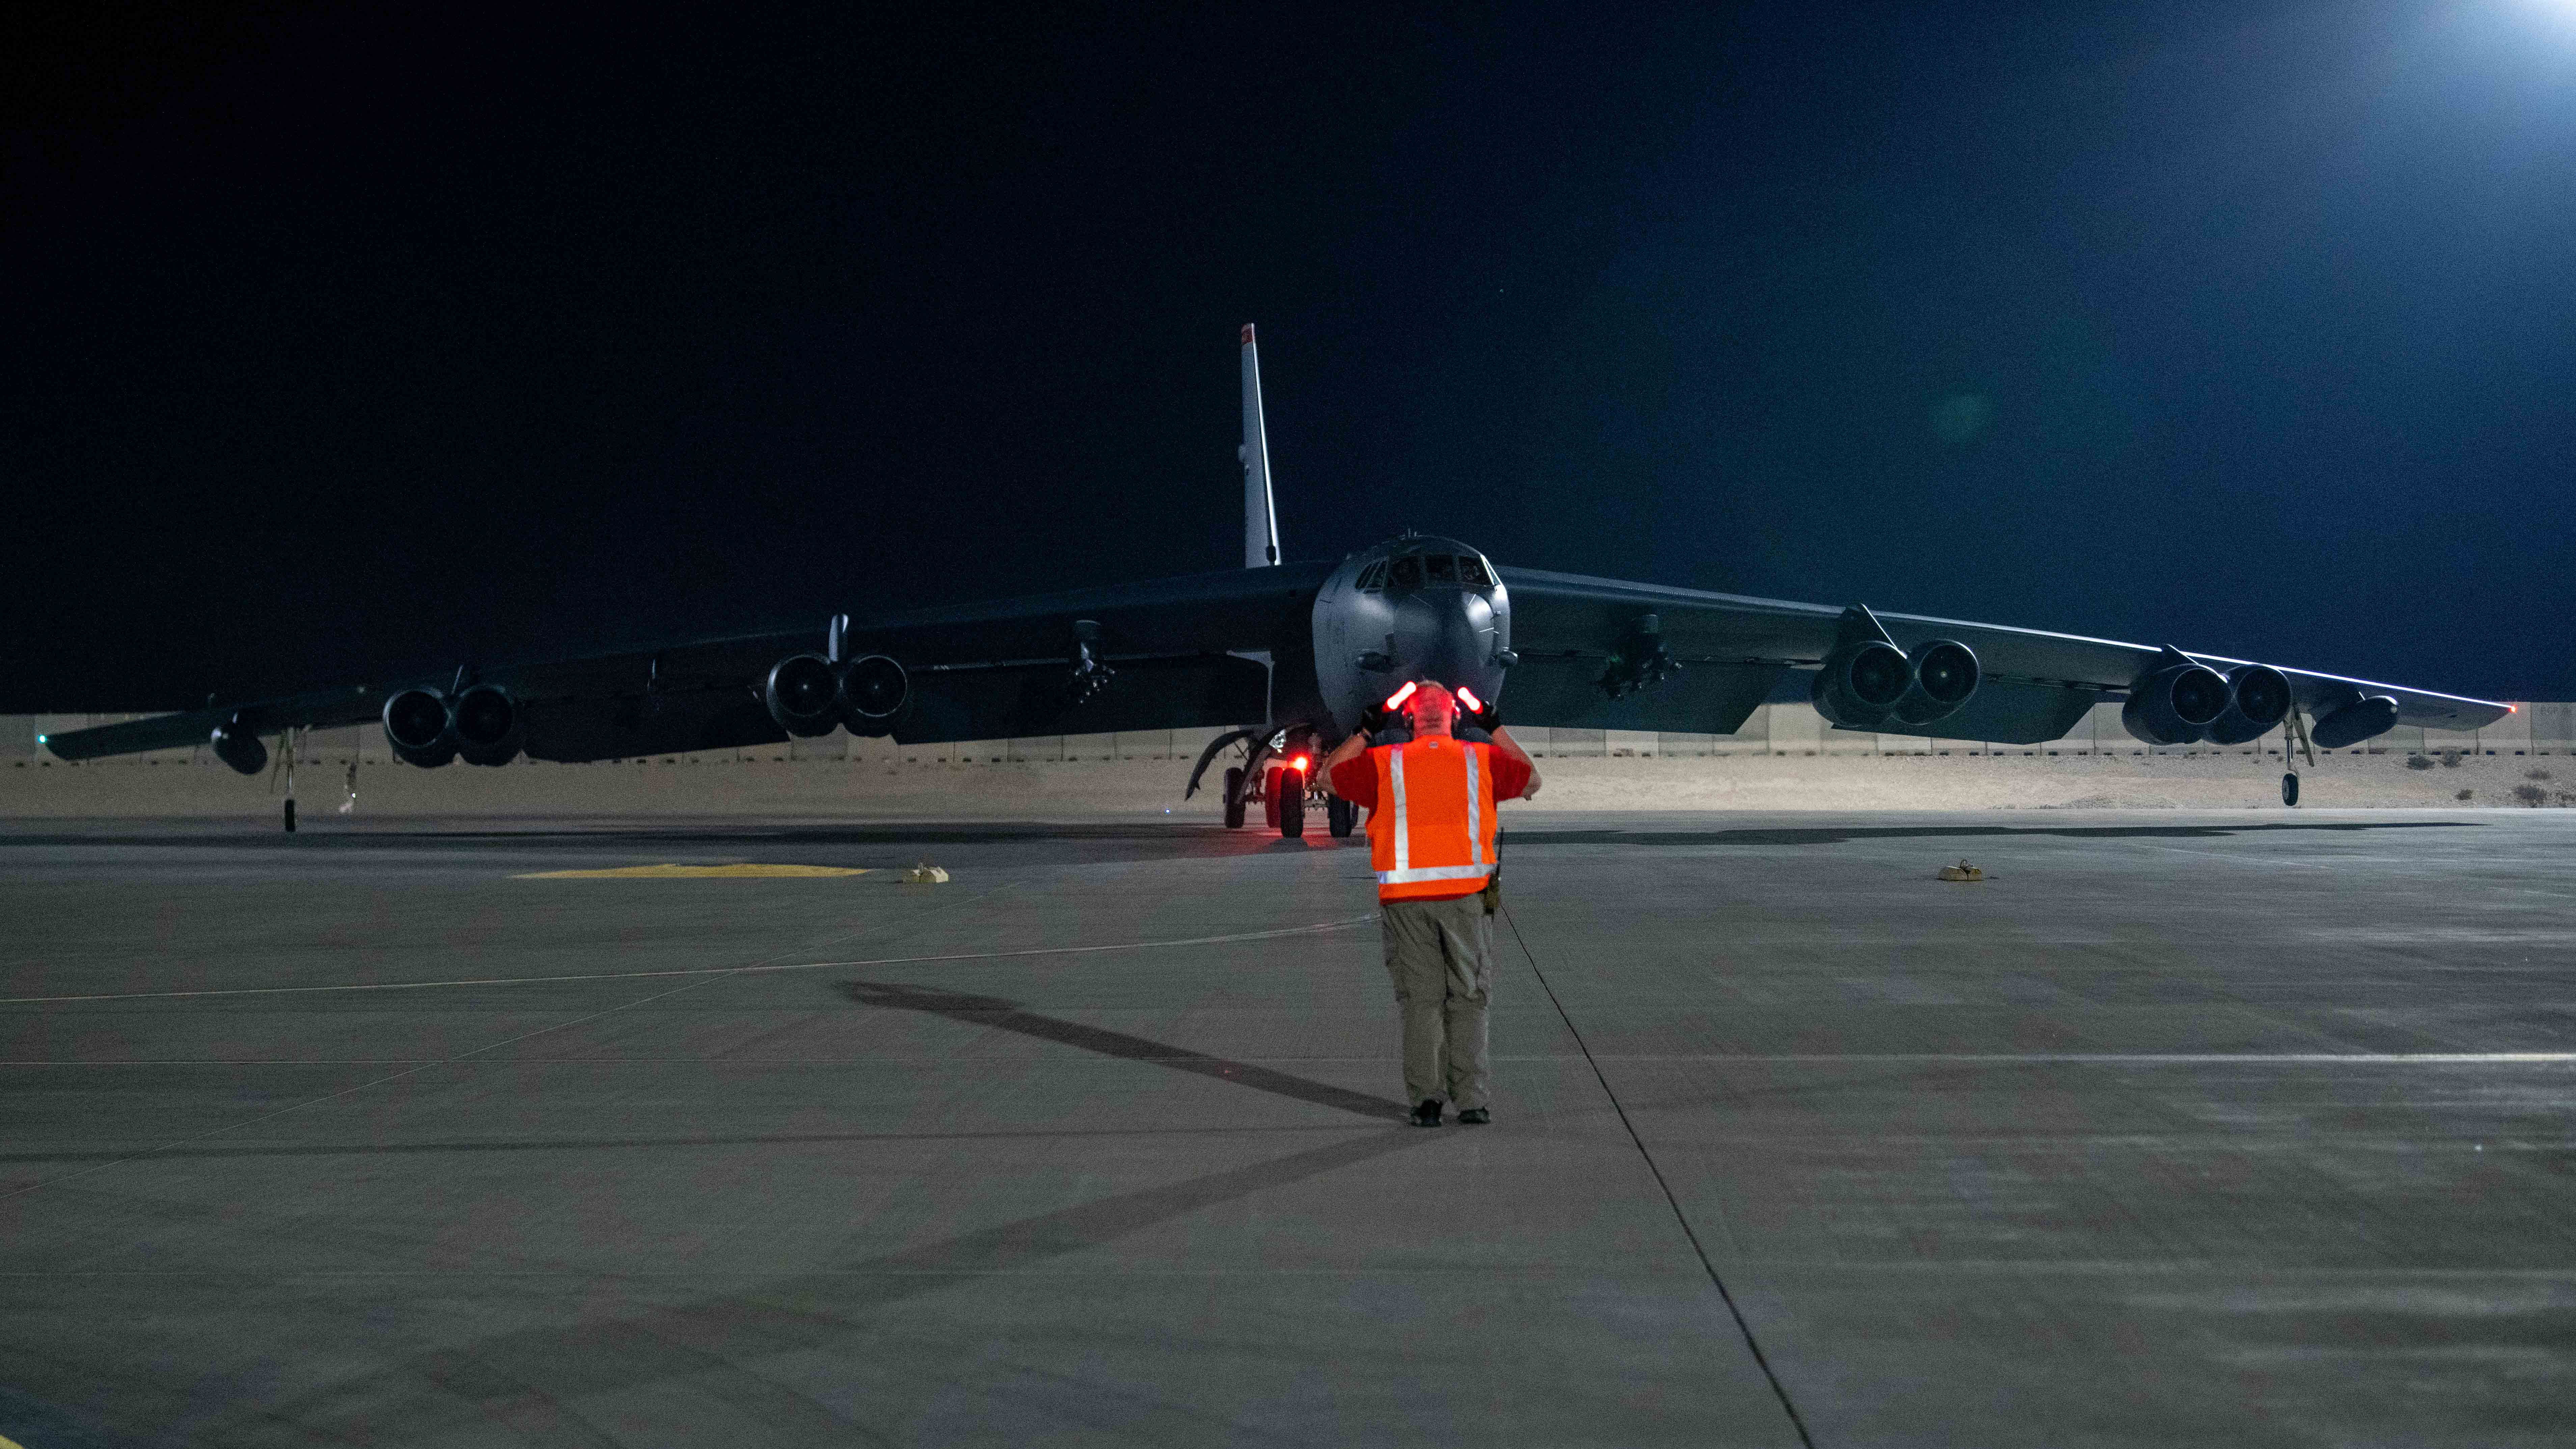 US airstrikes, surveillance in Afghanistan may continue from afar after drawdown